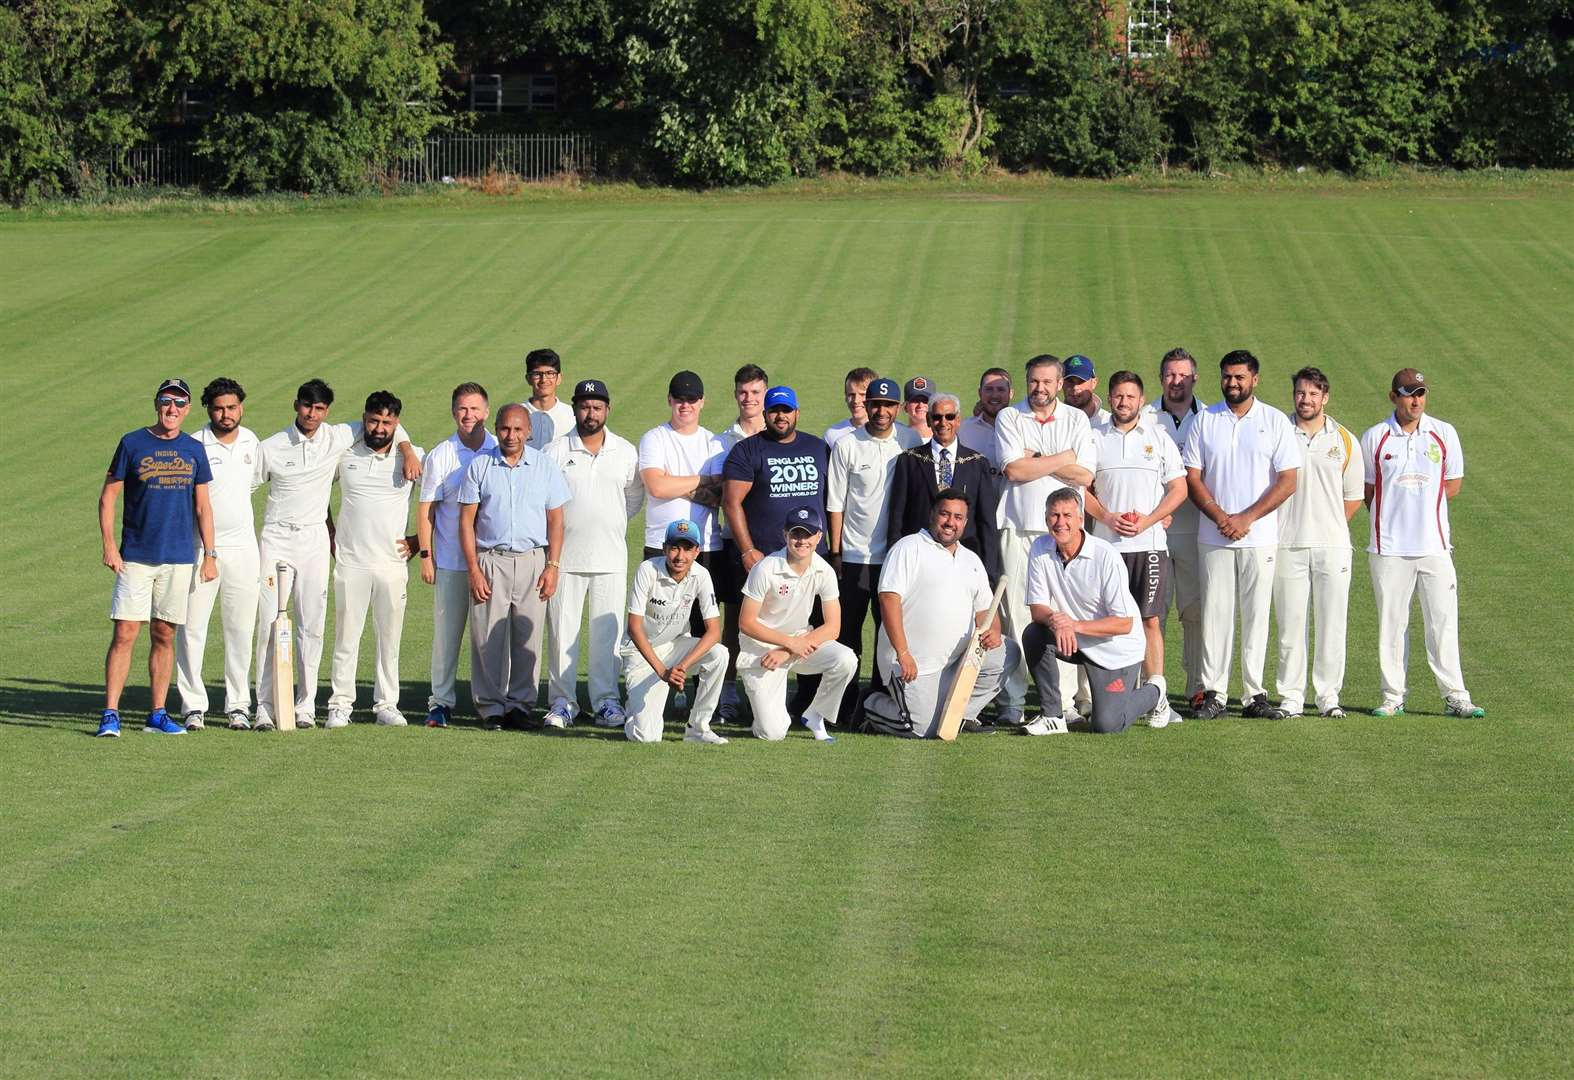 Police hit for six in charity cricket match